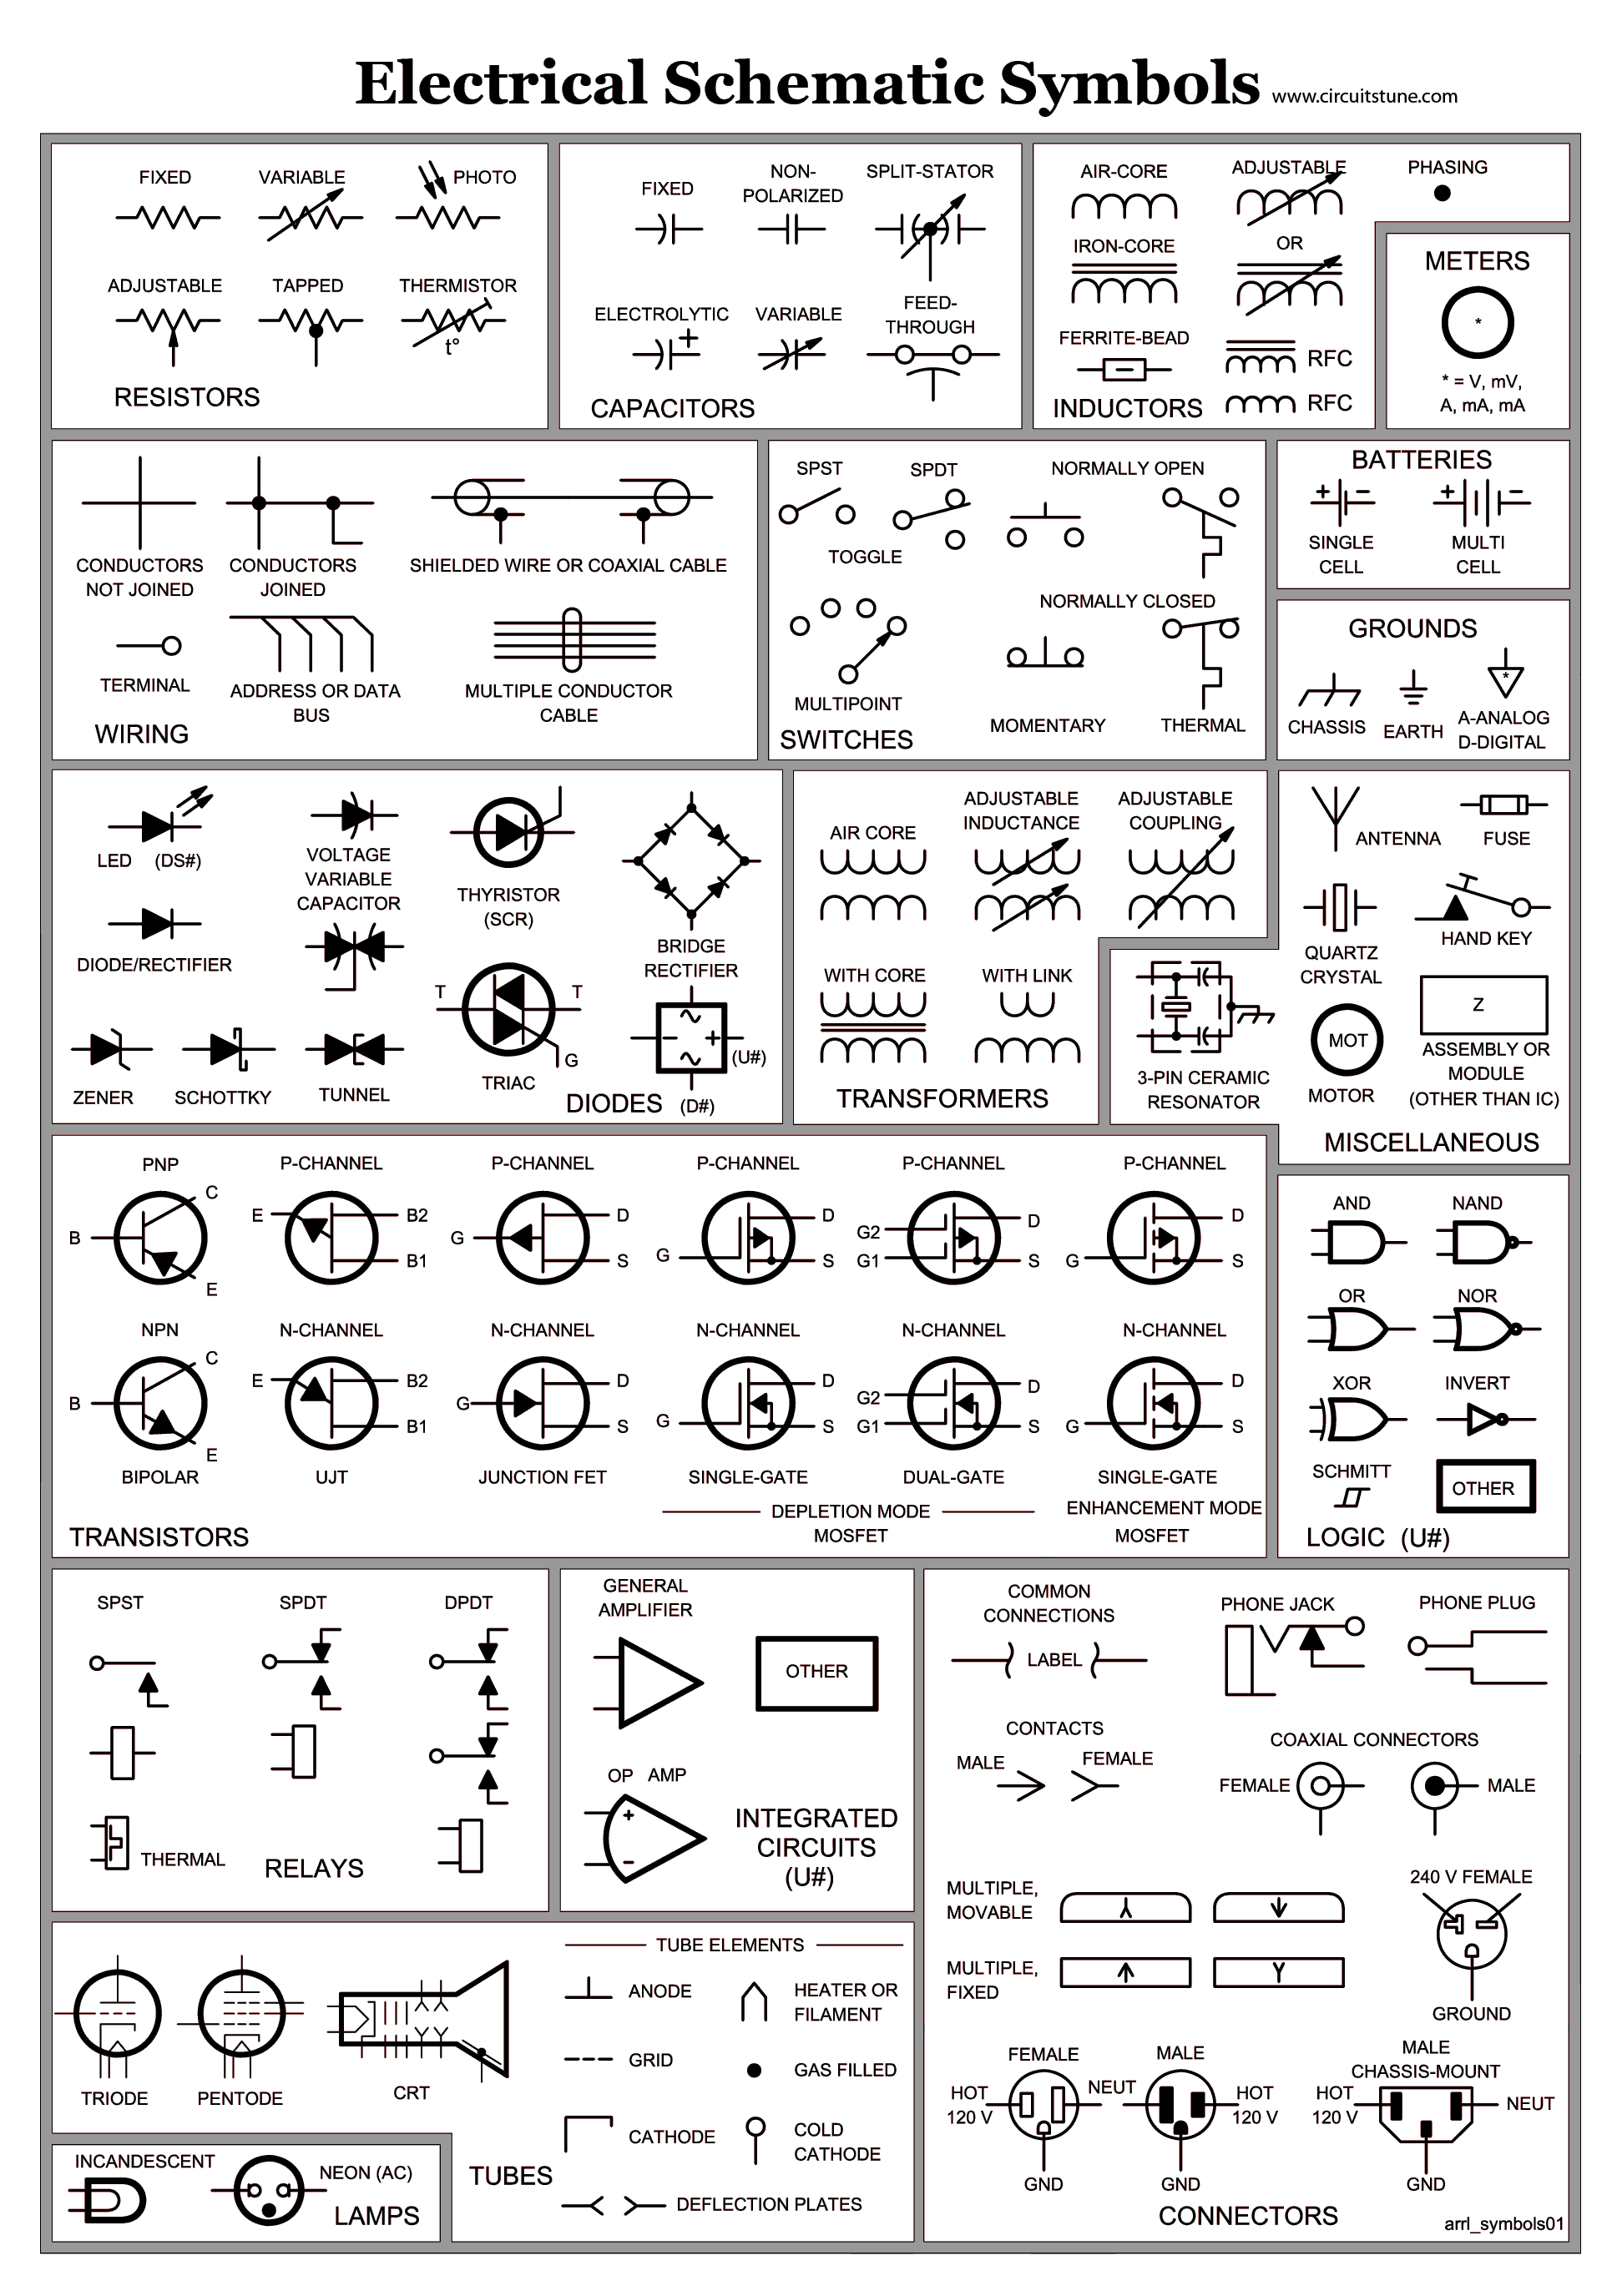 Circuit schematic symbols | BMET Wiki | FANDOM powered by Wikia